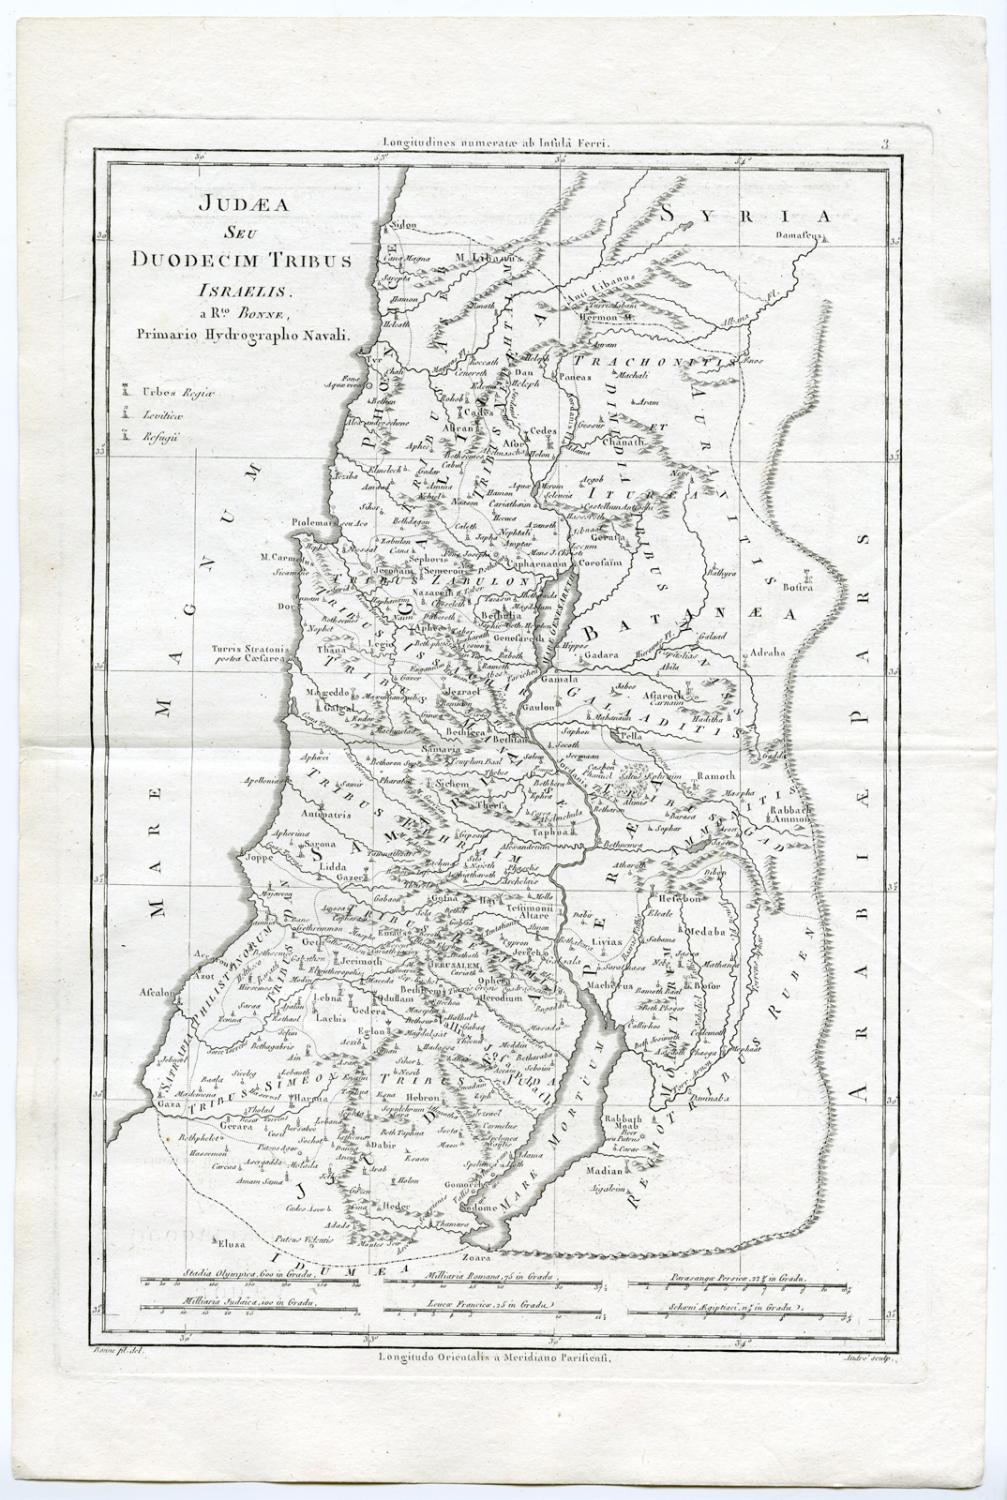 Antique Print-PALESTINE-HOLY LAND-TWELVE ... on biblical israel vs israel today, printable new testament israel map, geography of israel today, detailed map of israel today, physical israel map today, map of ancient israel today, interactive map of israel today, printable map of san bernardino county, large map of israel today, israel 1948 and today, map of middle east today, israel map as of today, news in israel today, israel boundaries today, printable map of southeast asia, printable map of western europe, religions in israel today, printable map of romania, israel vs judah today, modern maps of israel today,